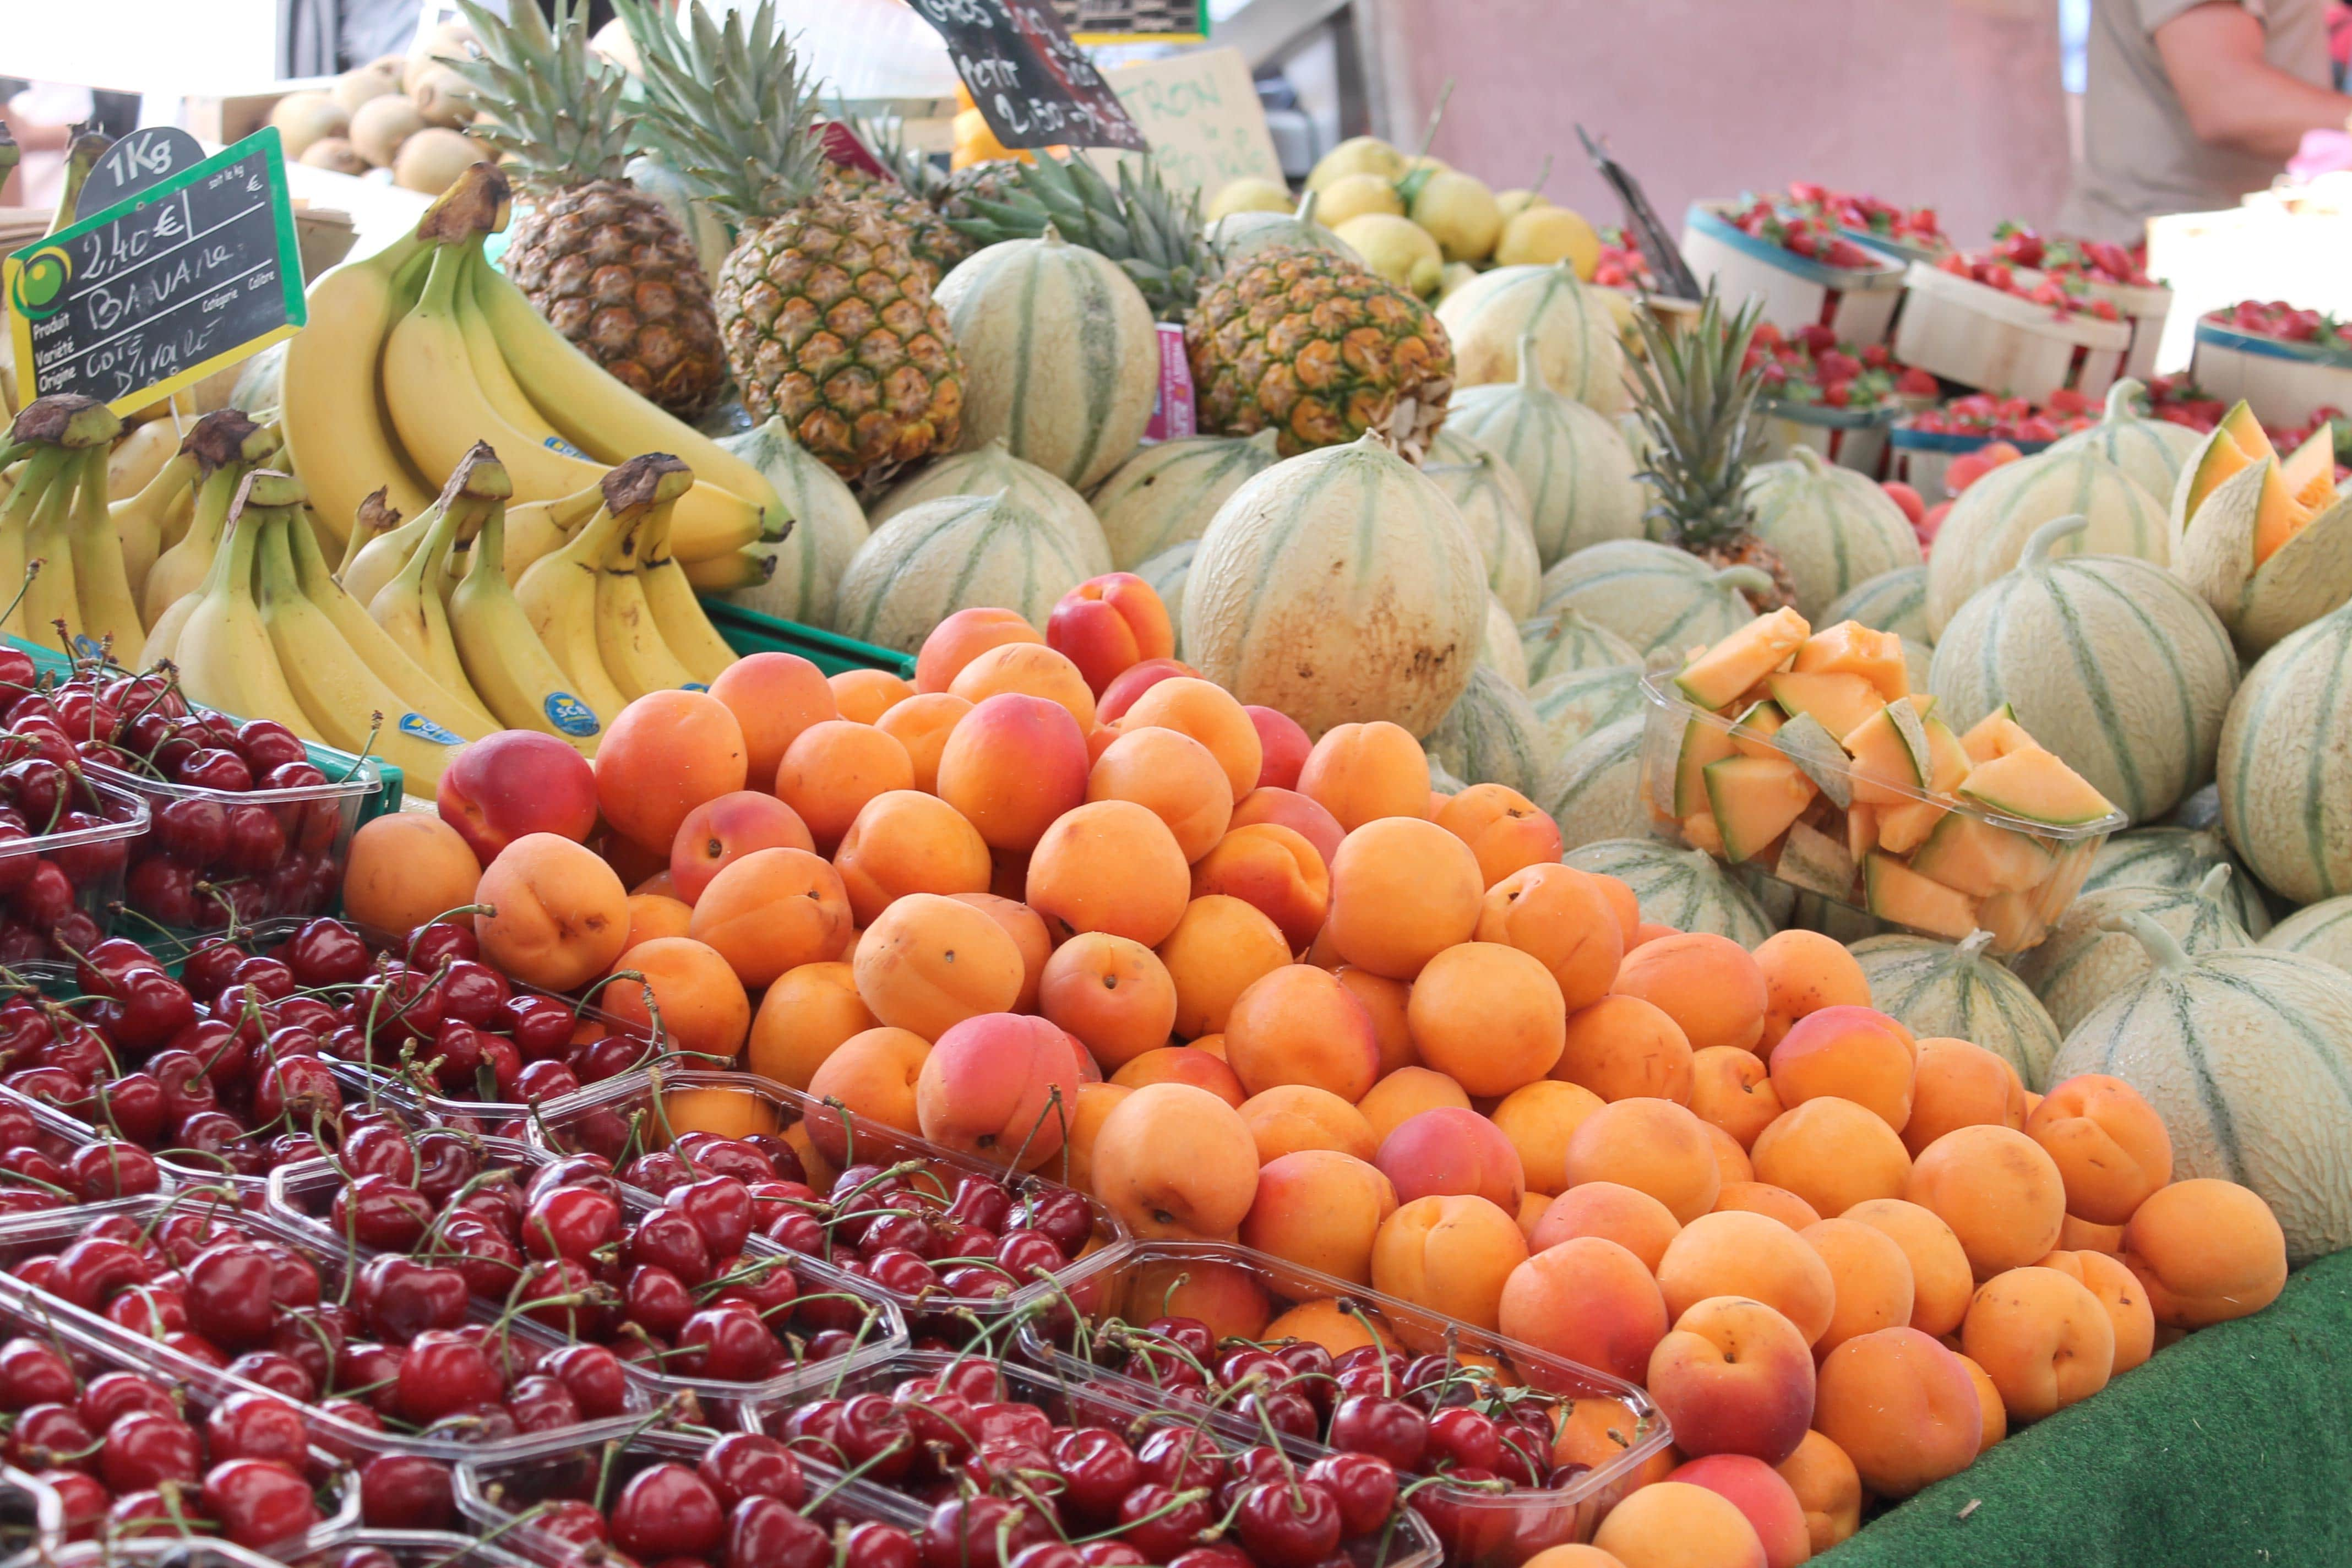 Shore excursion, fruit stall, Aix en Provence